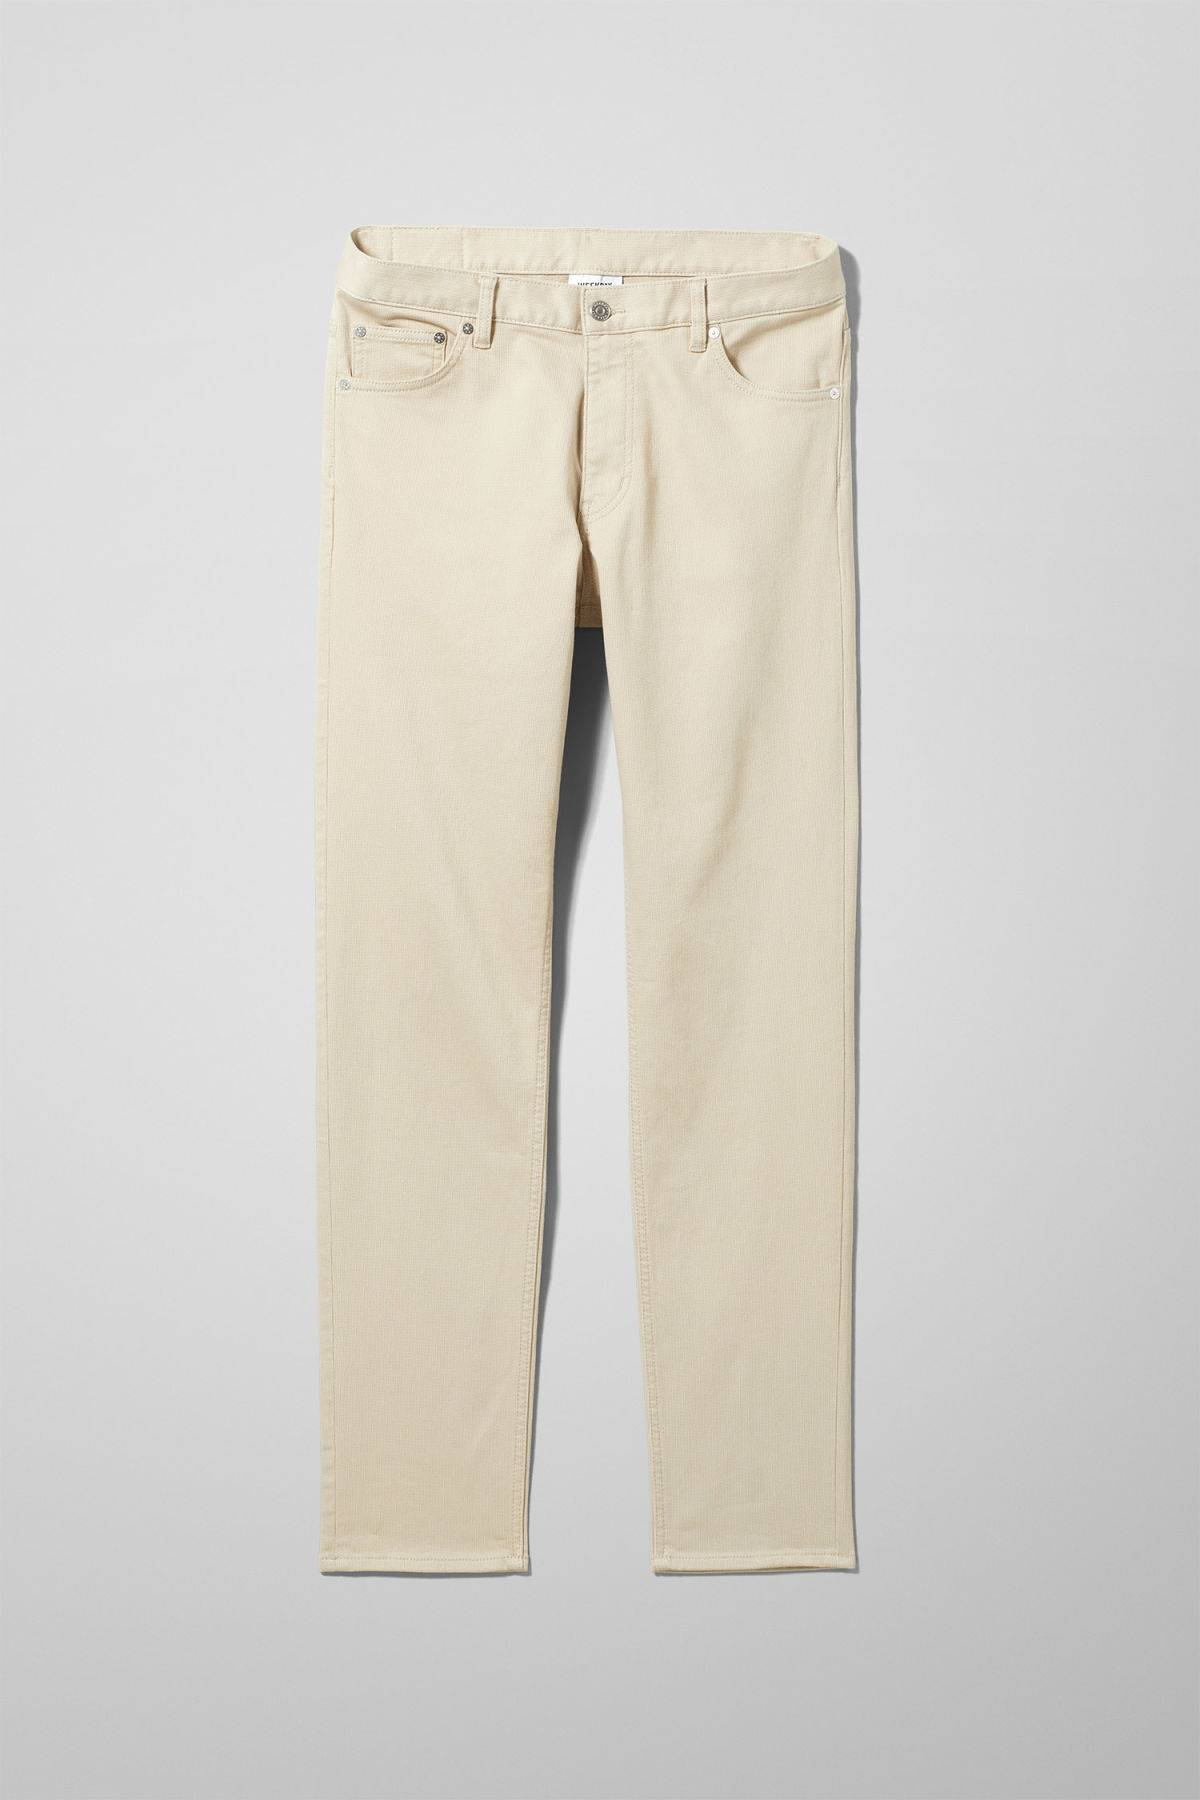 Sunday Bedford Trousers - Beige